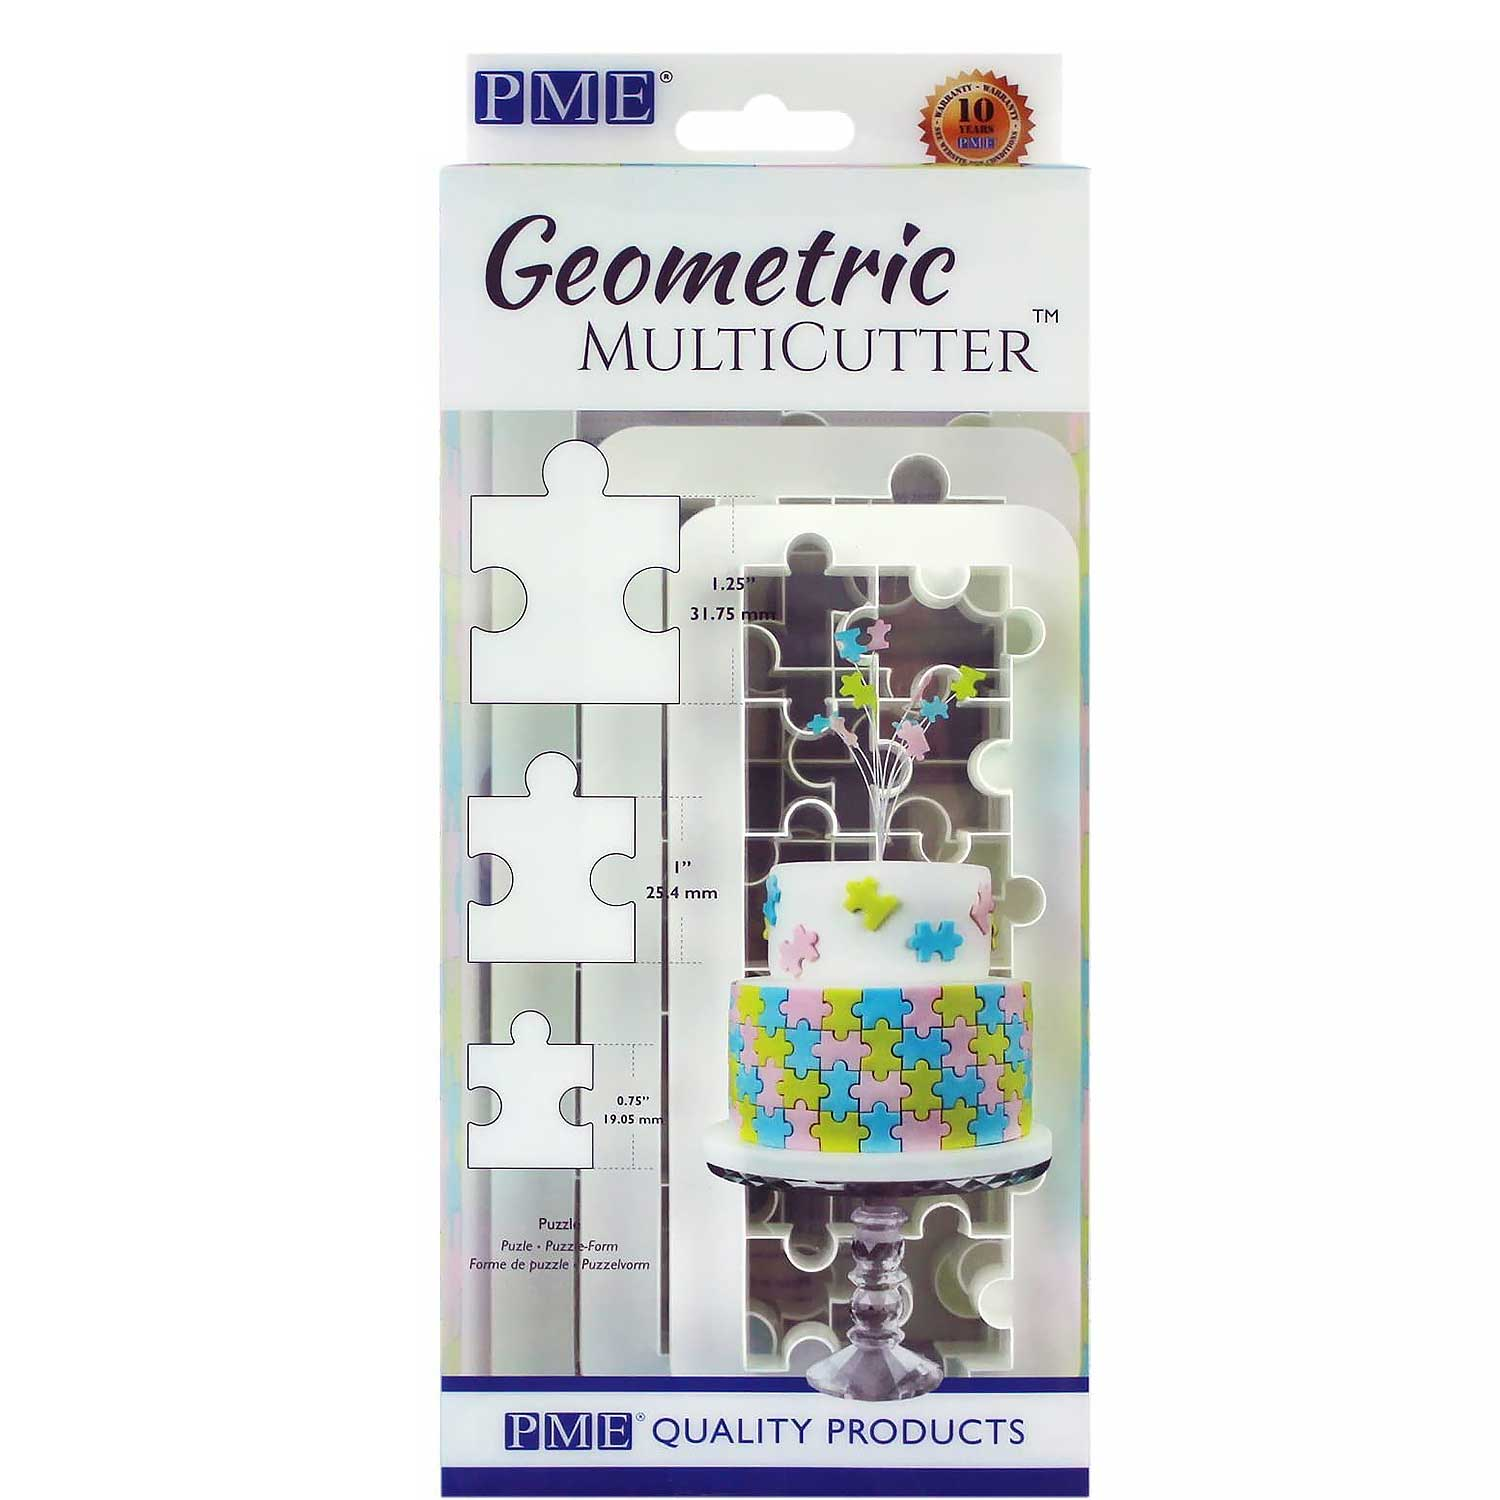 Puzzle Geometric Multicutter™ Set